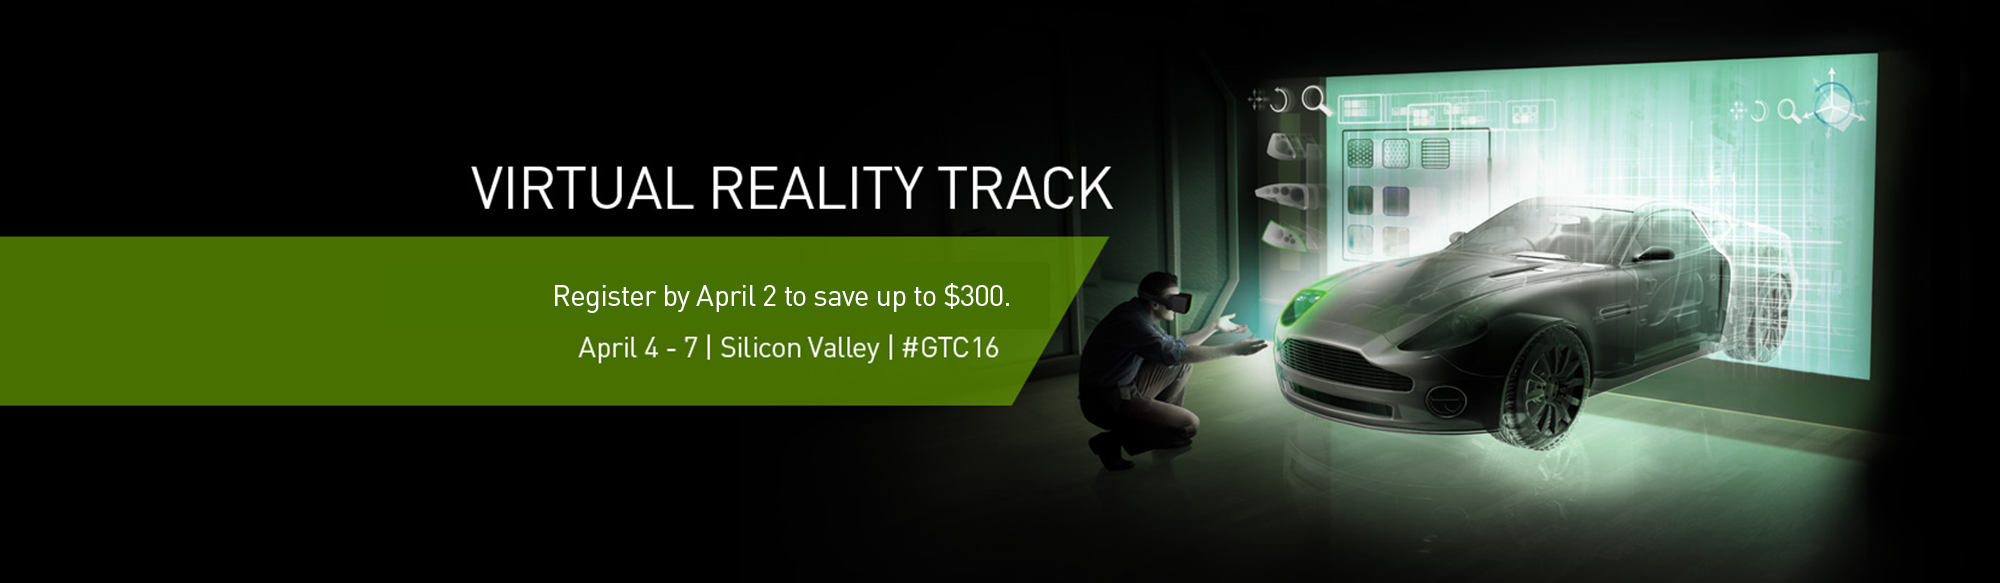 Explore Virtual Reality at GTC